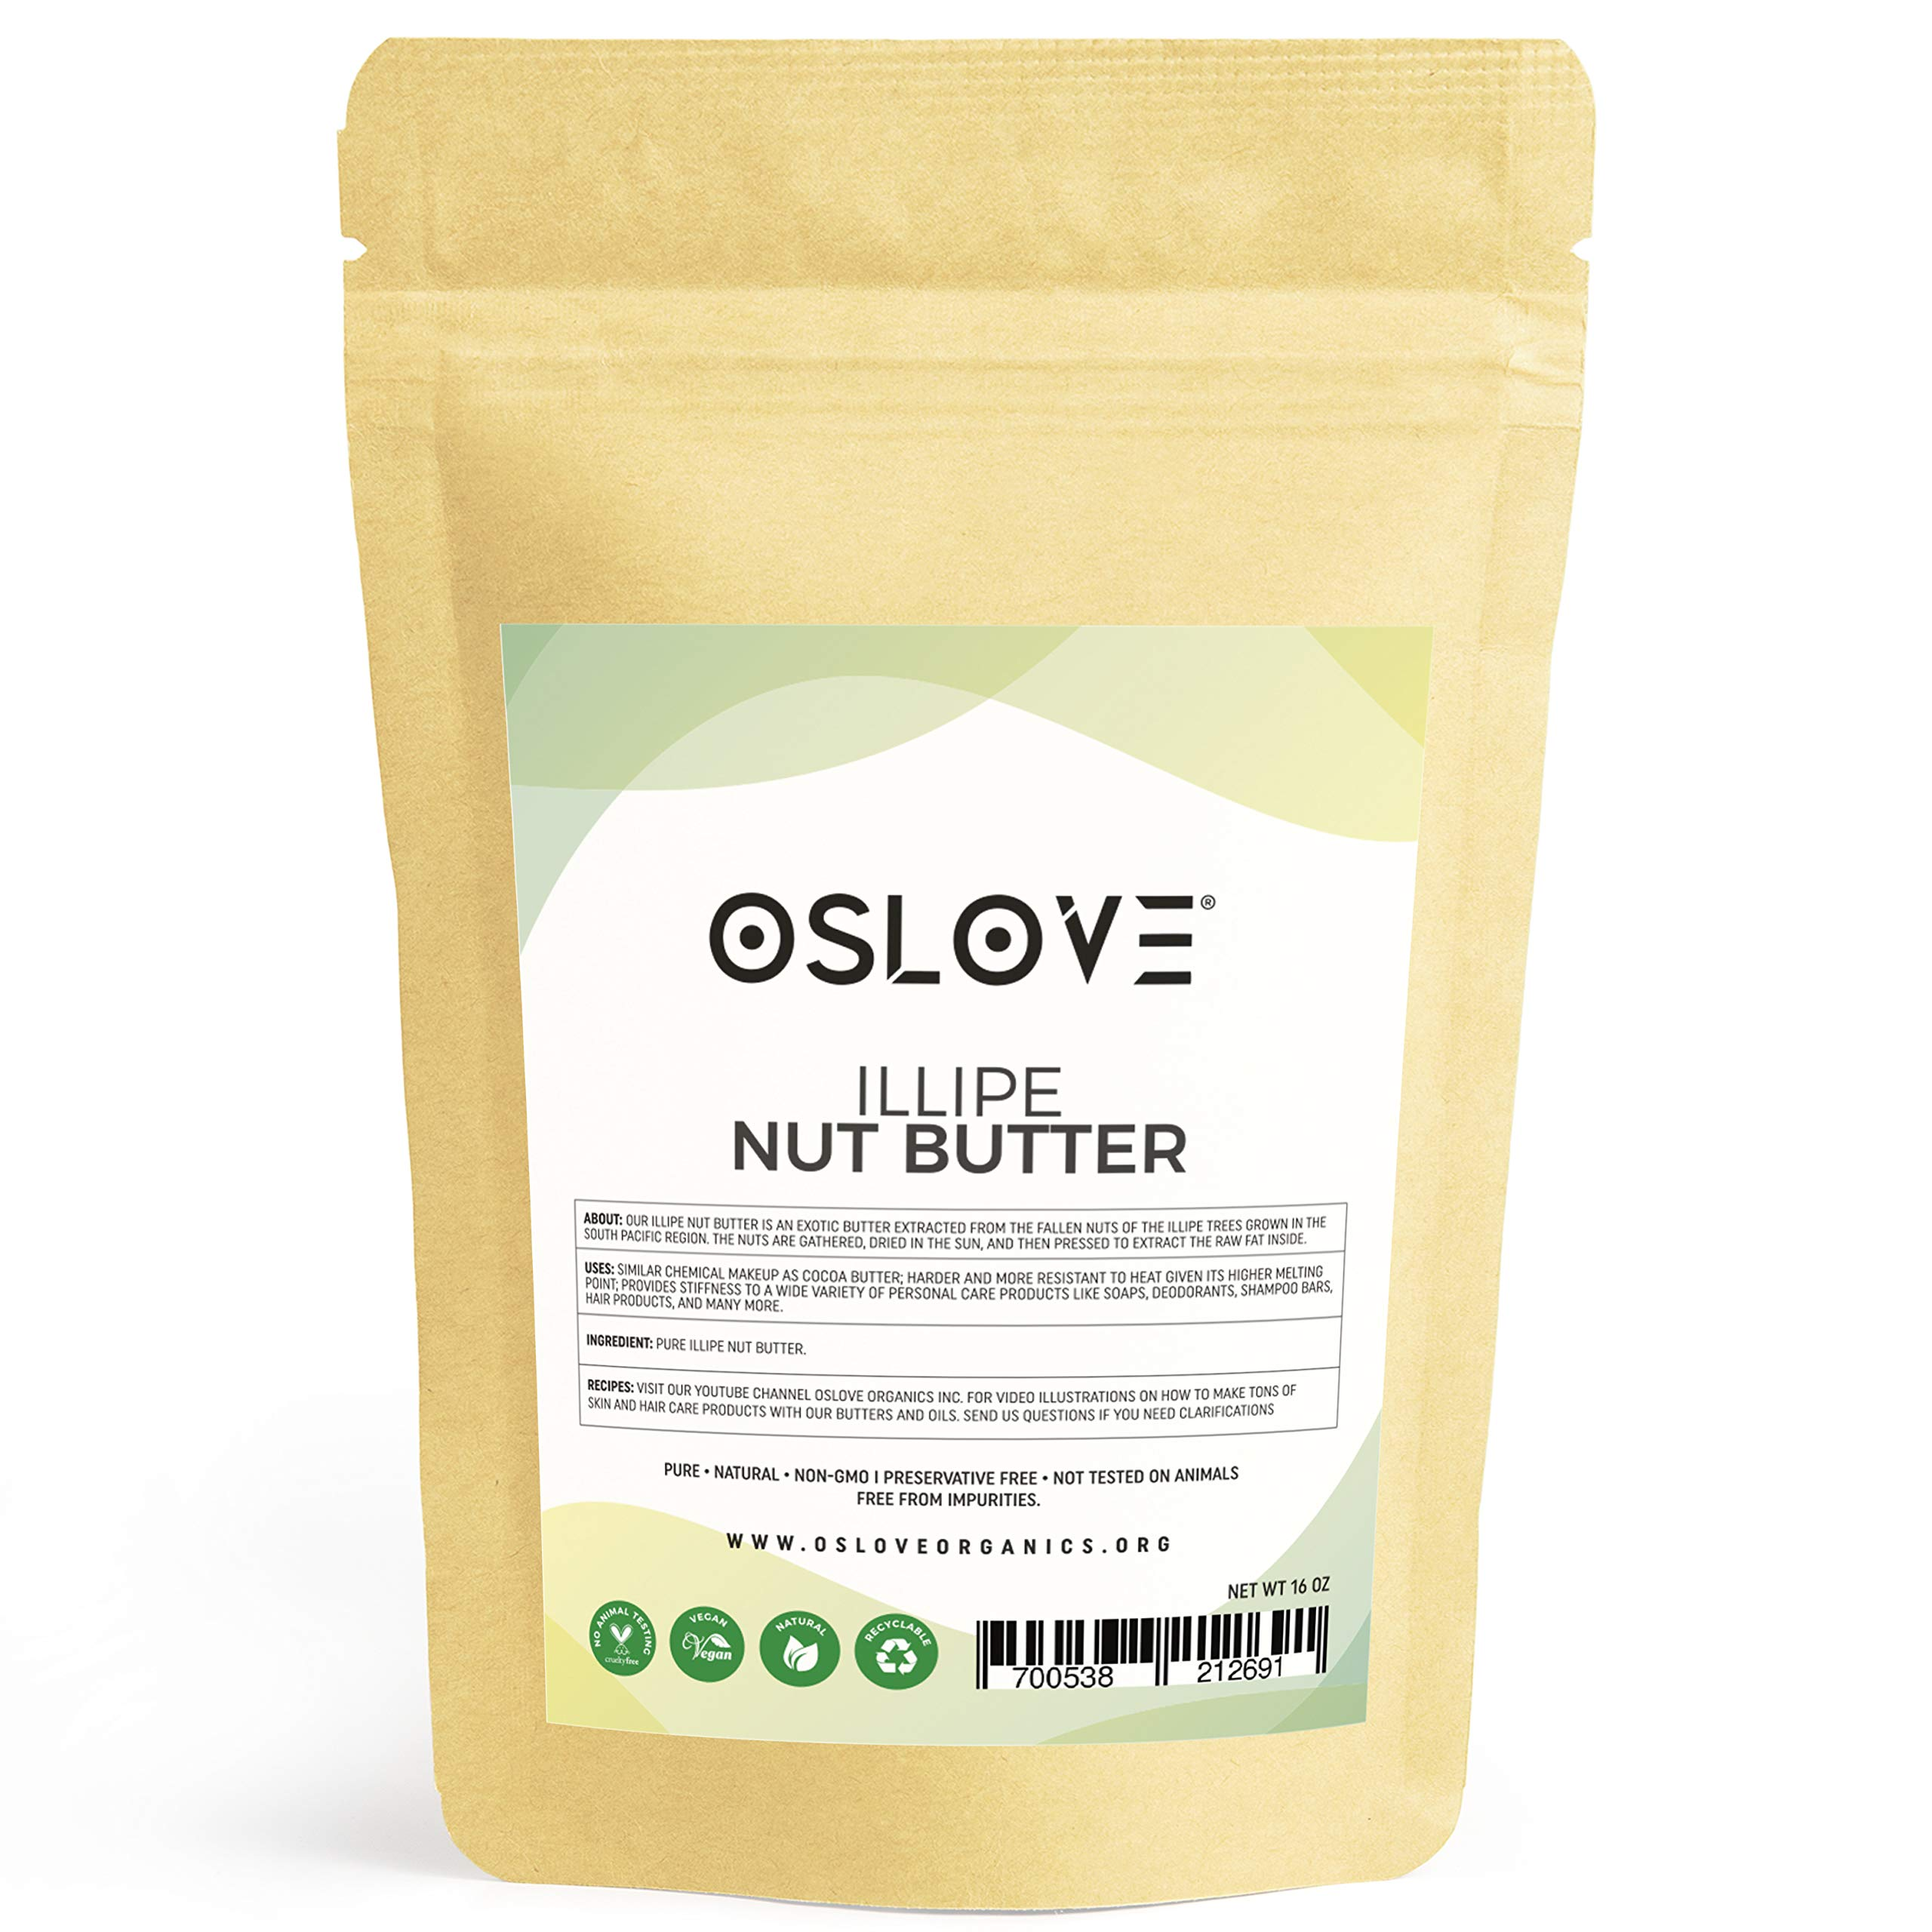 Illipe Nut Butter 1LB - 100% Pure & Natural by Oslove Organics- Great for DIY body butters, deodorant sticks, soaps and more